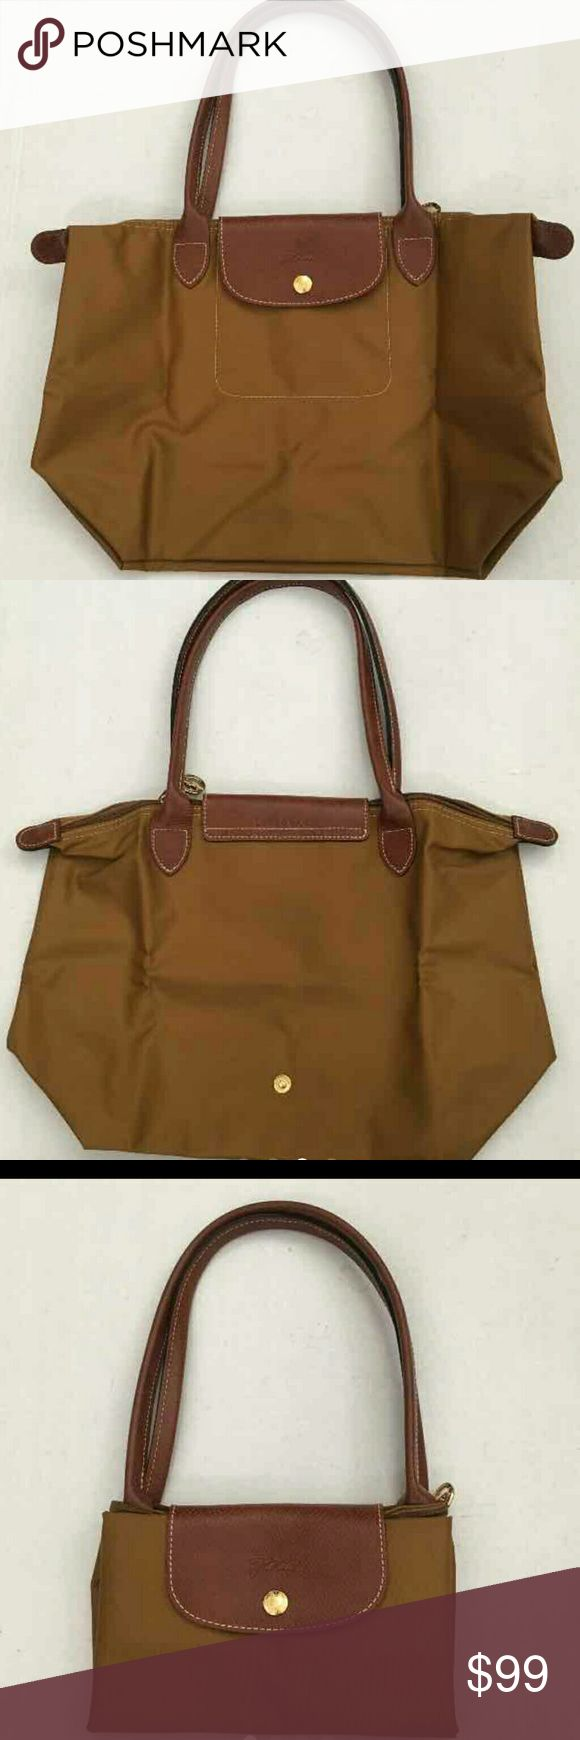 "Authentic long champ bag. NWOT.  Approx Size: 14.5""x10""x5.5 Longchamp Bags"